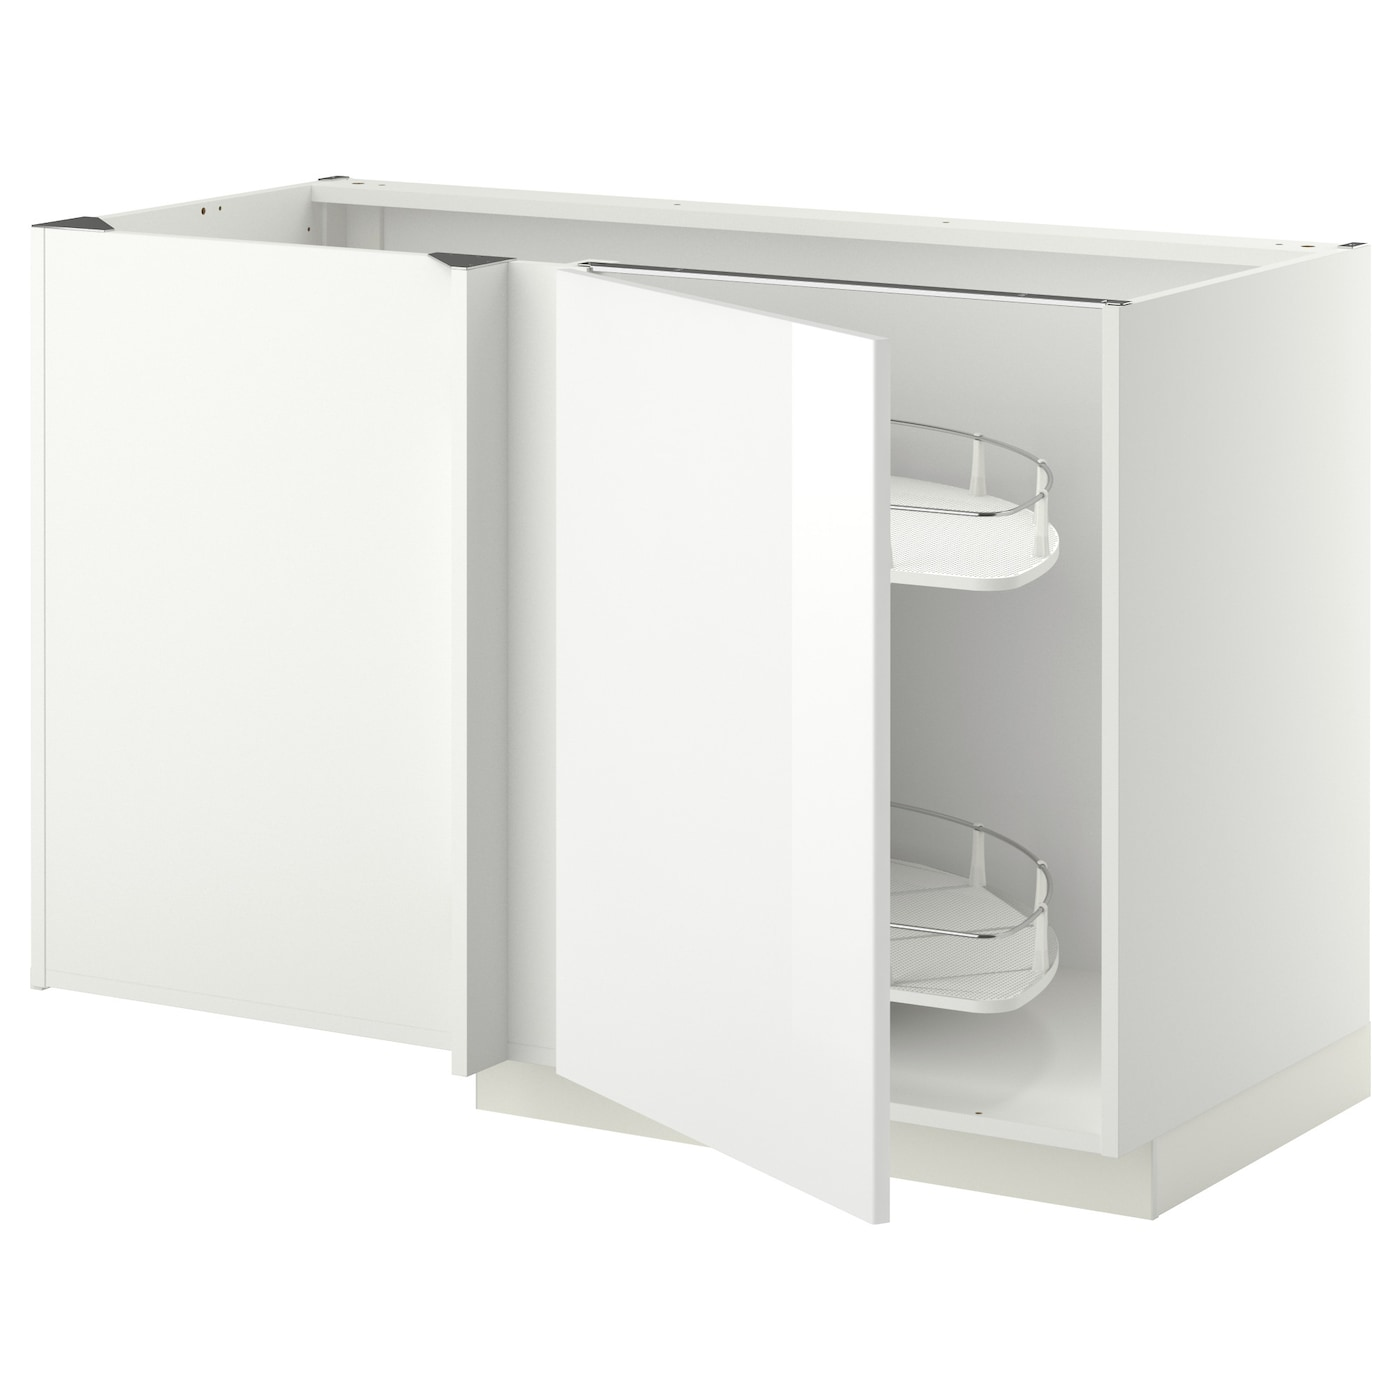 Metod corner base cab w pull out fitting white ringhult for Ikea kuche metod